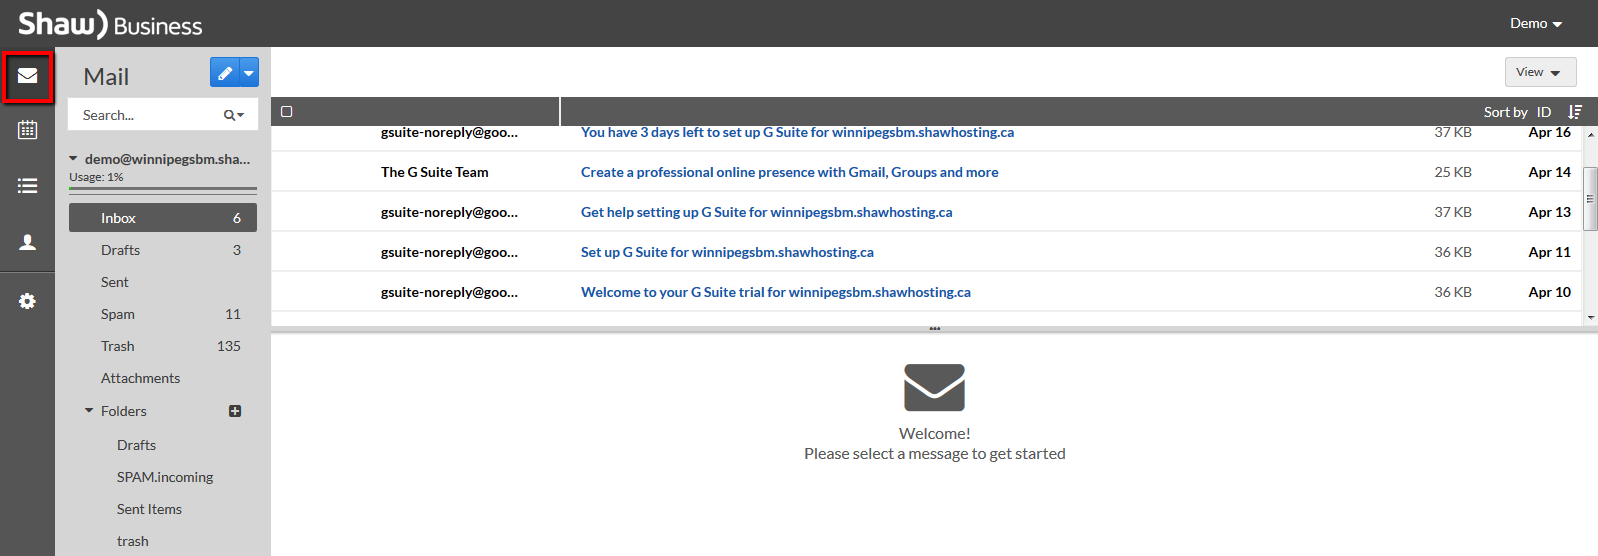 Shaw hosting webmail inbox